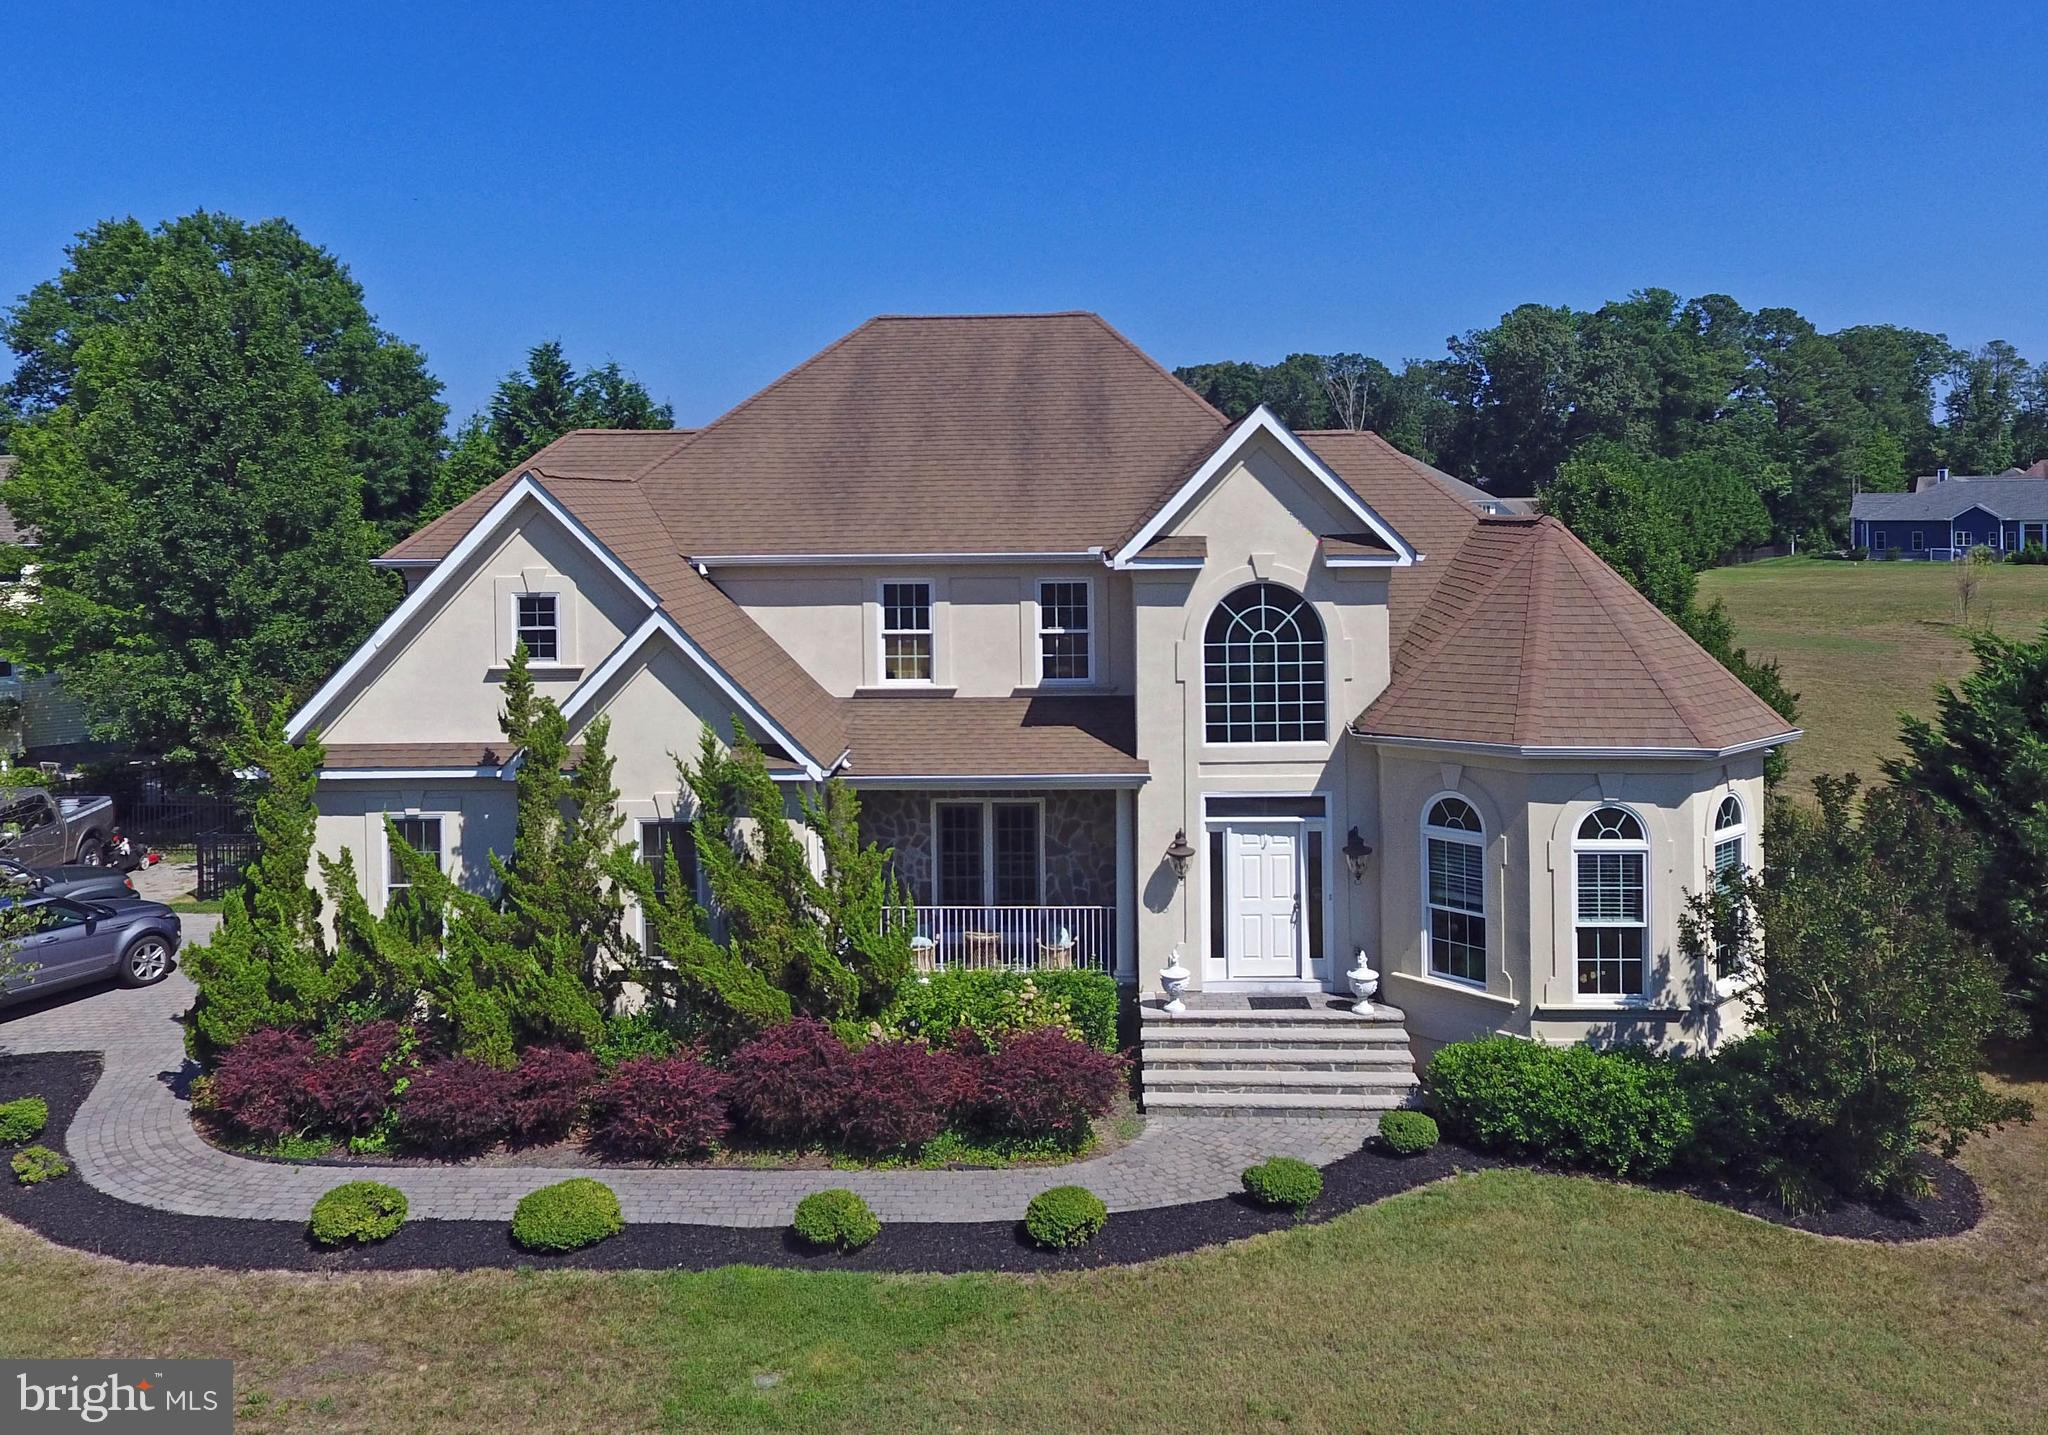 This is an ideal setting for a 4BR 3.5BA  (plus bonus room or 5th BR) with an open floor plan and dr